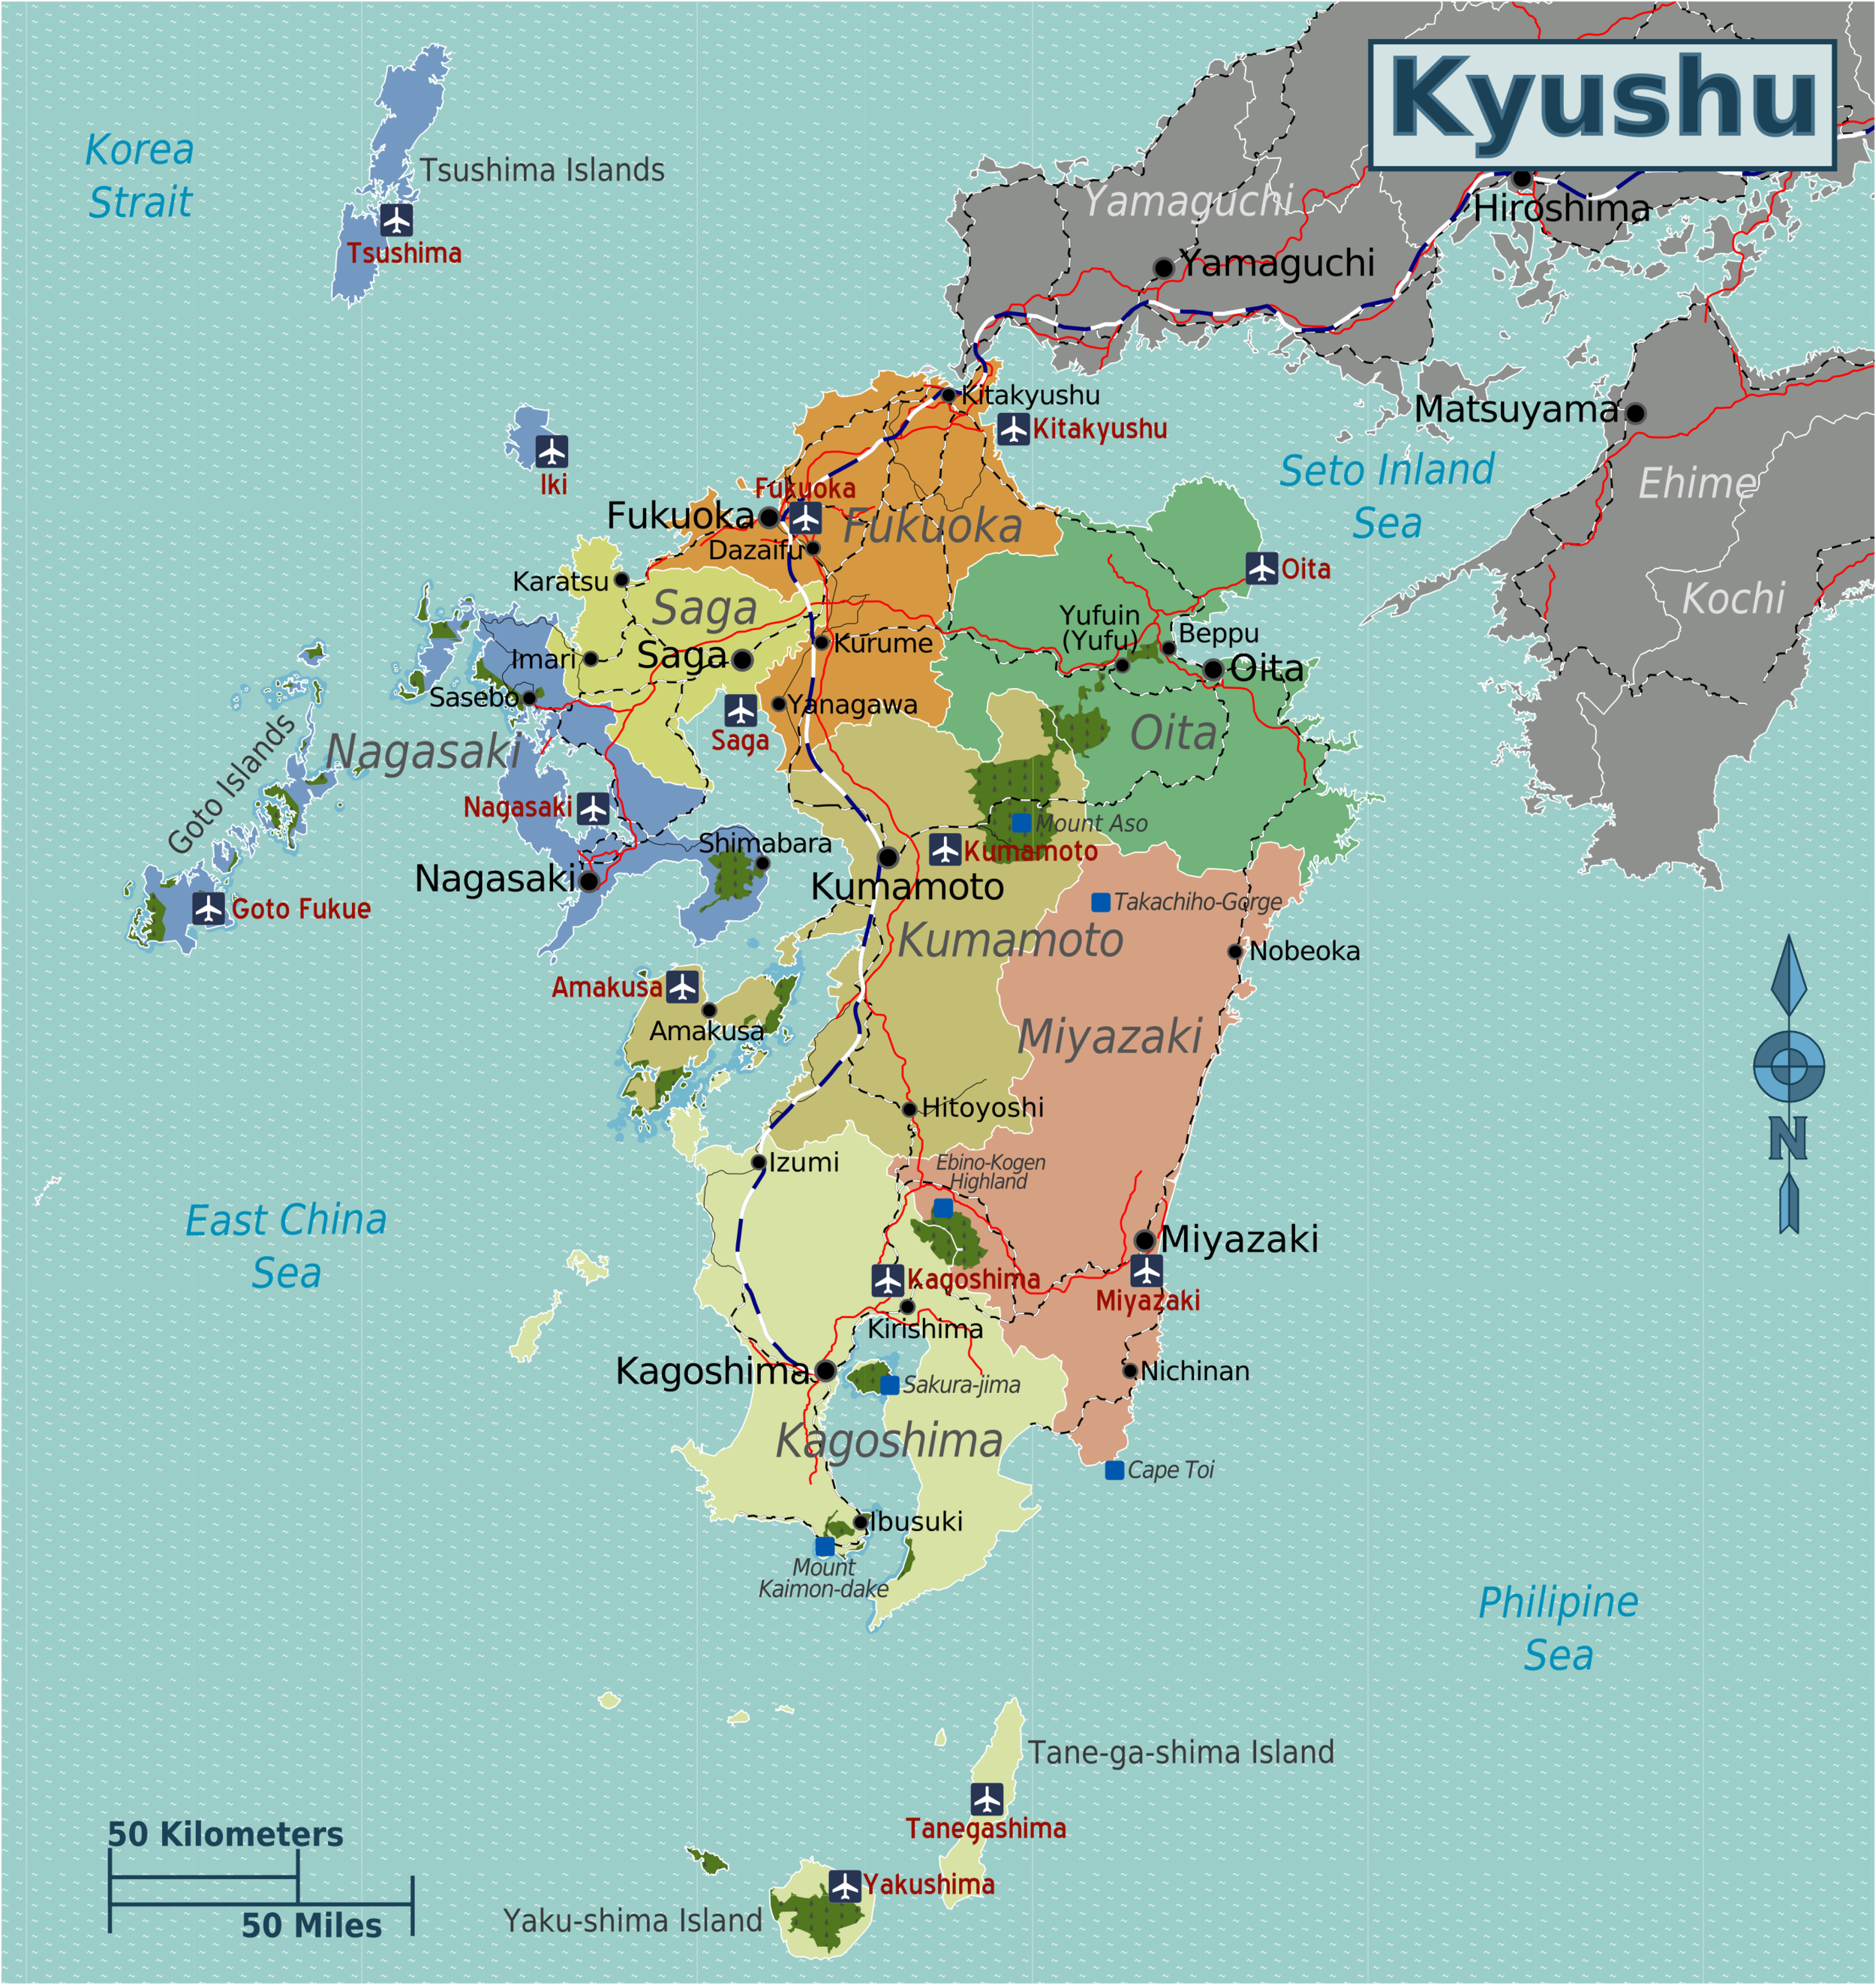 A map of the island of Kyushu, Japan.